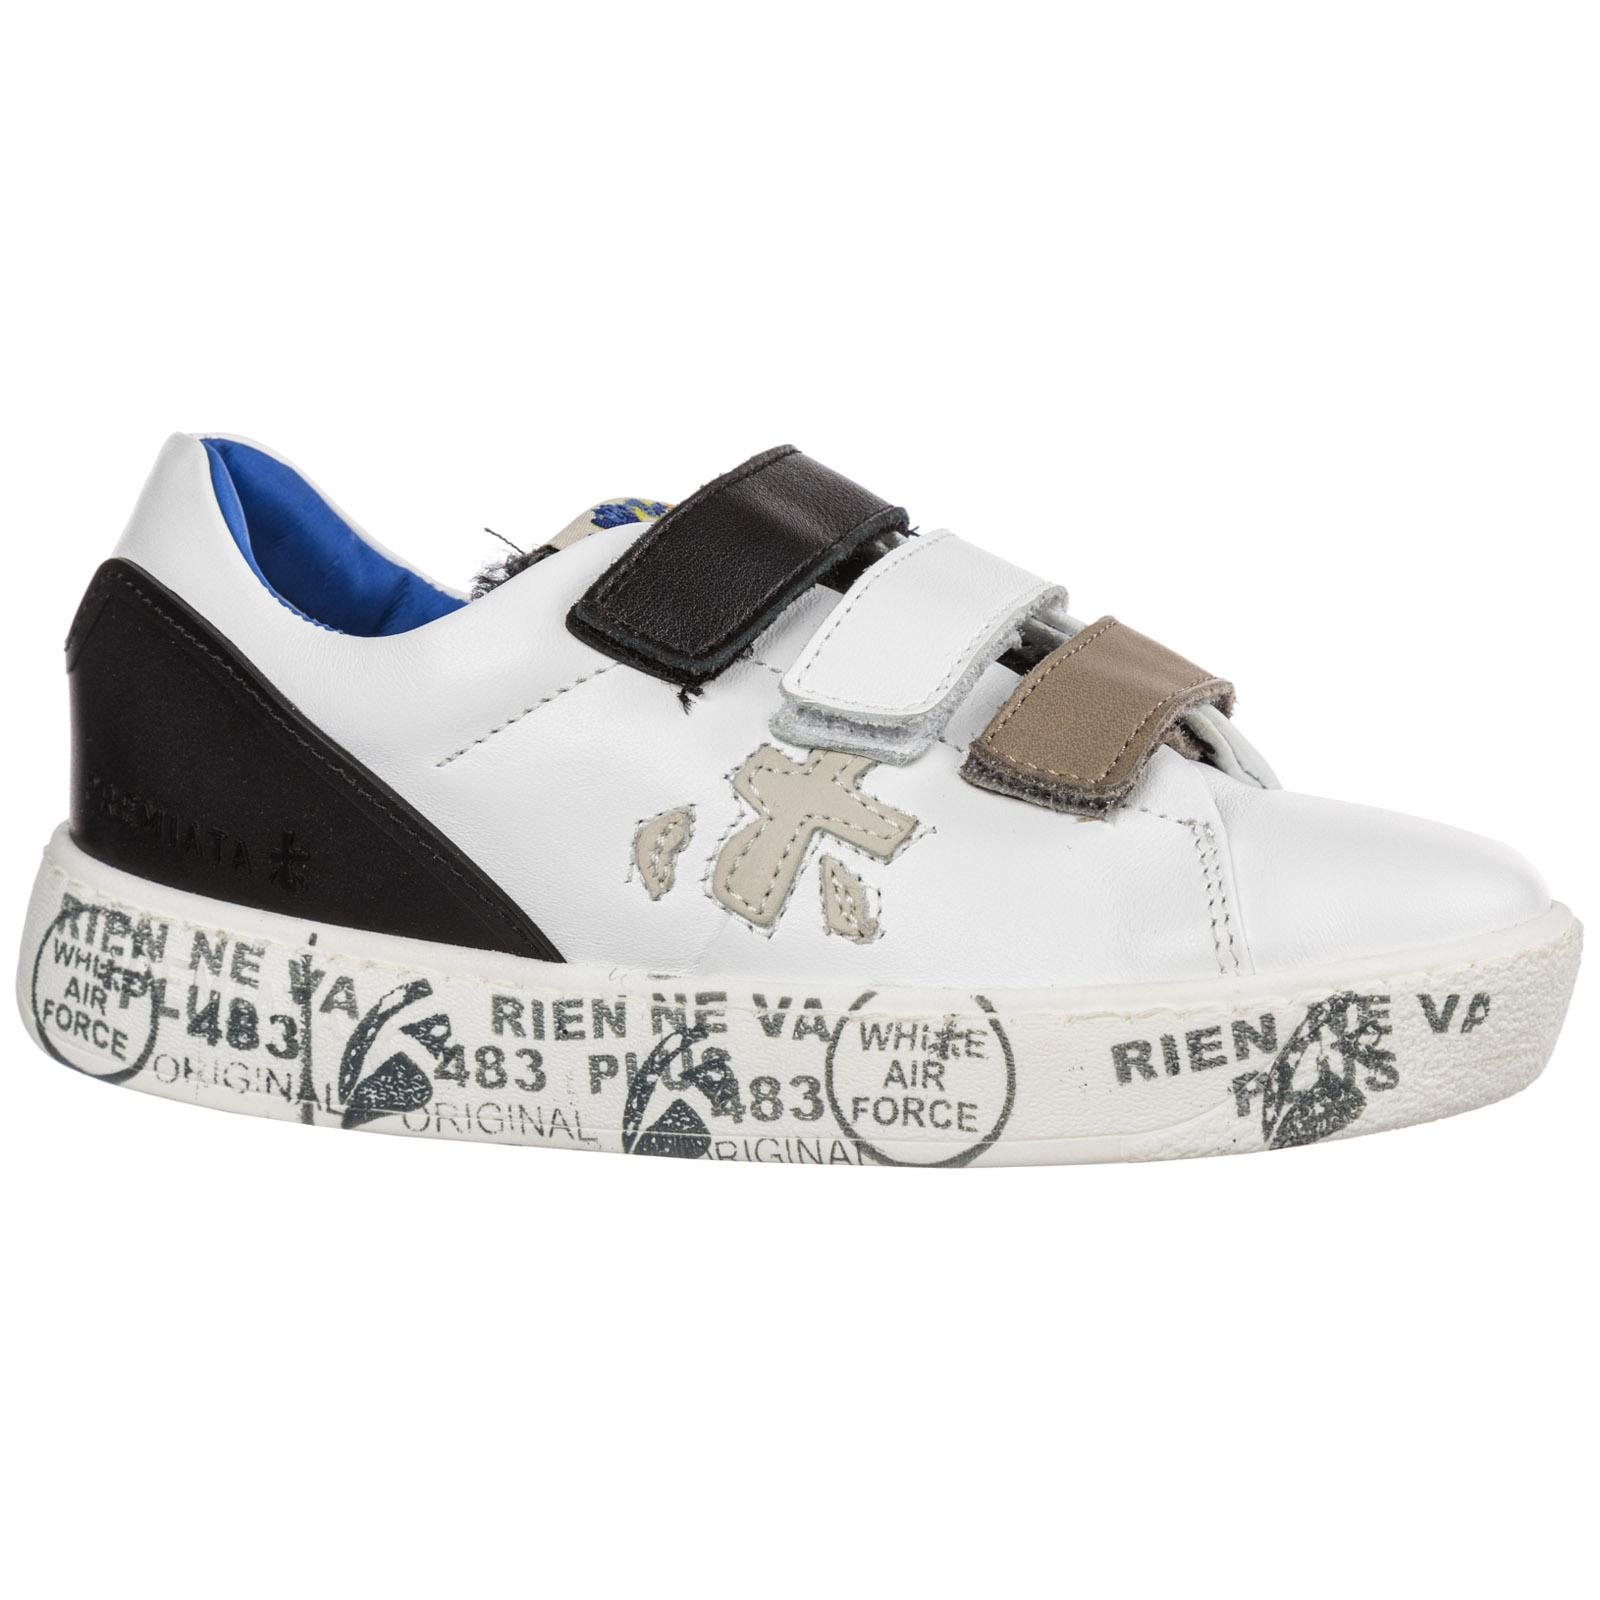 Premiata Boys Shoes Child Sneakers Suede Leather Steve V for